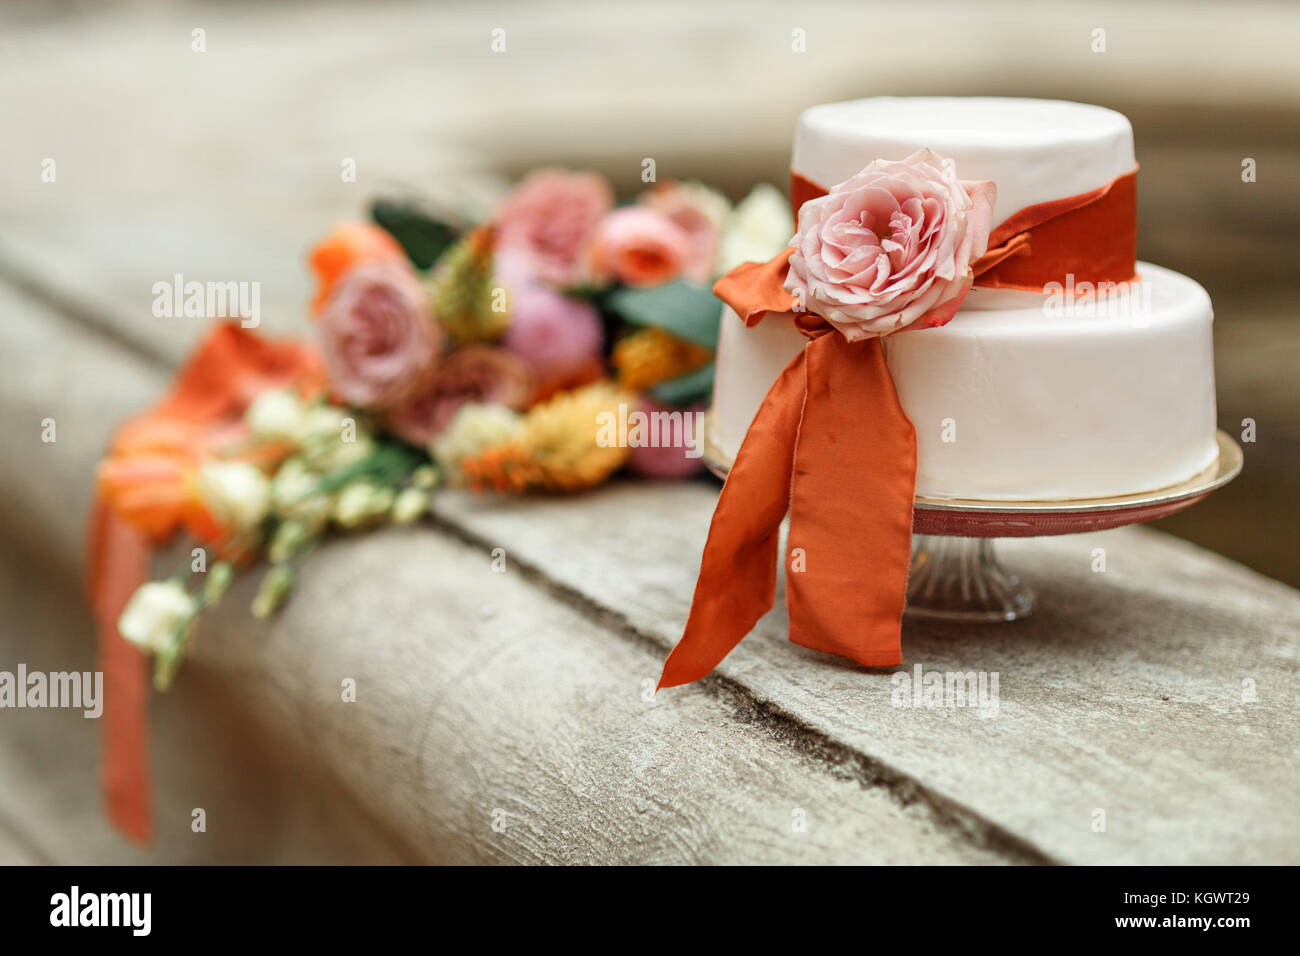 white wedding cake with red flower Stock Photo